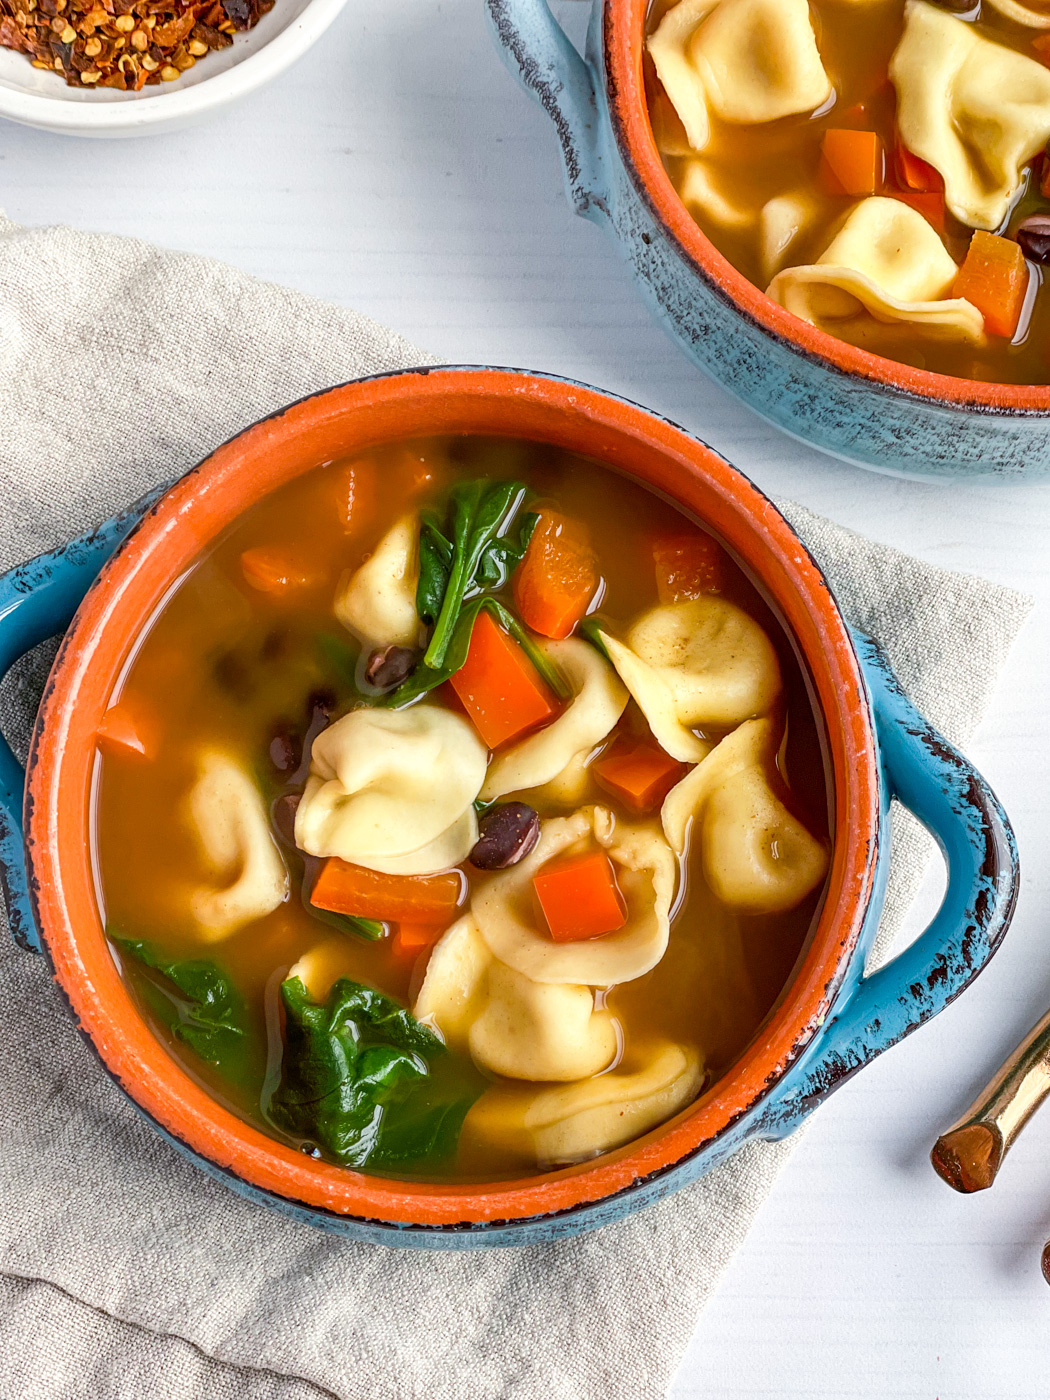 Vegetarian Black Bean Soup with Tortellini